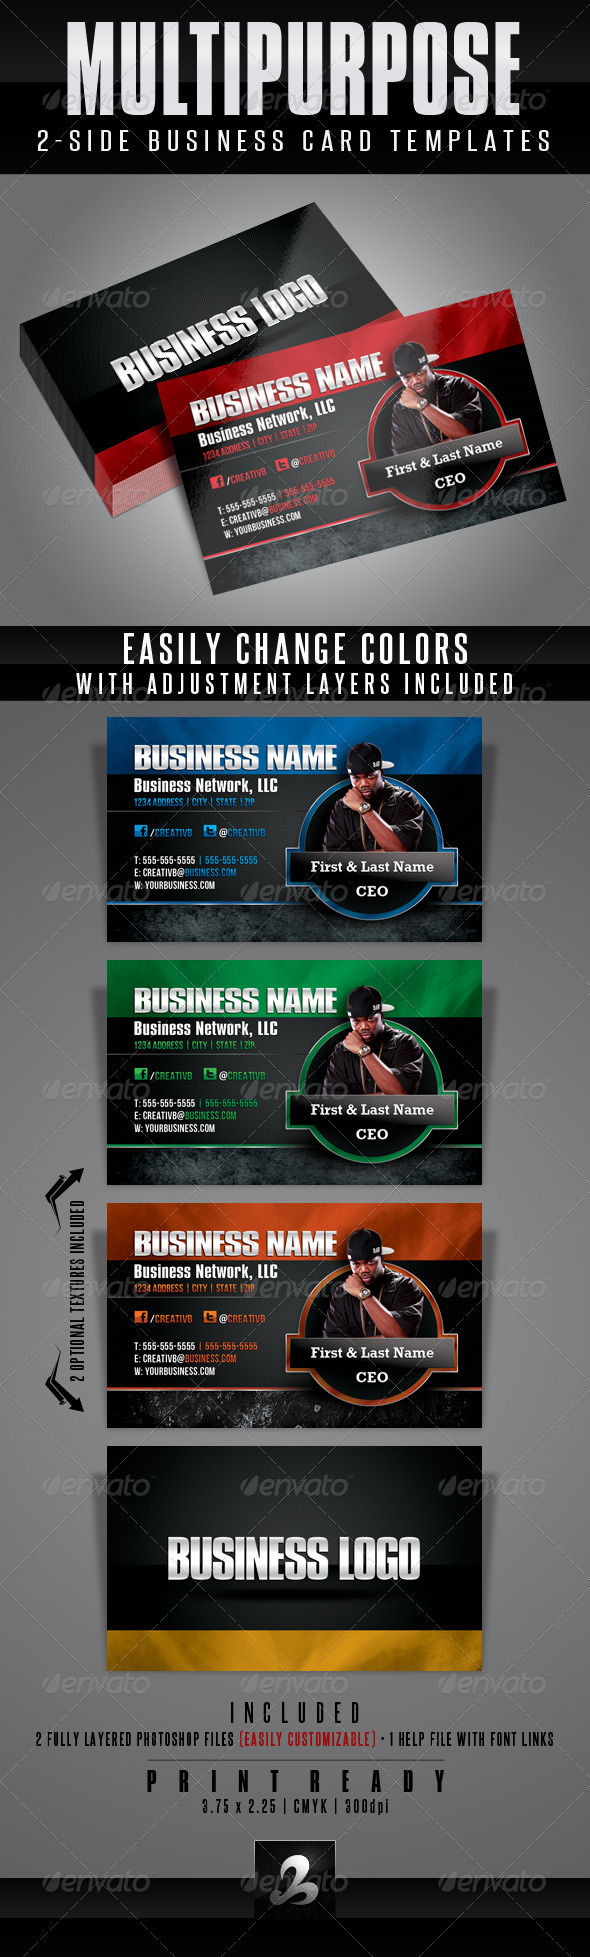 GraphicRiver Multipurpose Business Card Templates 1 3011348